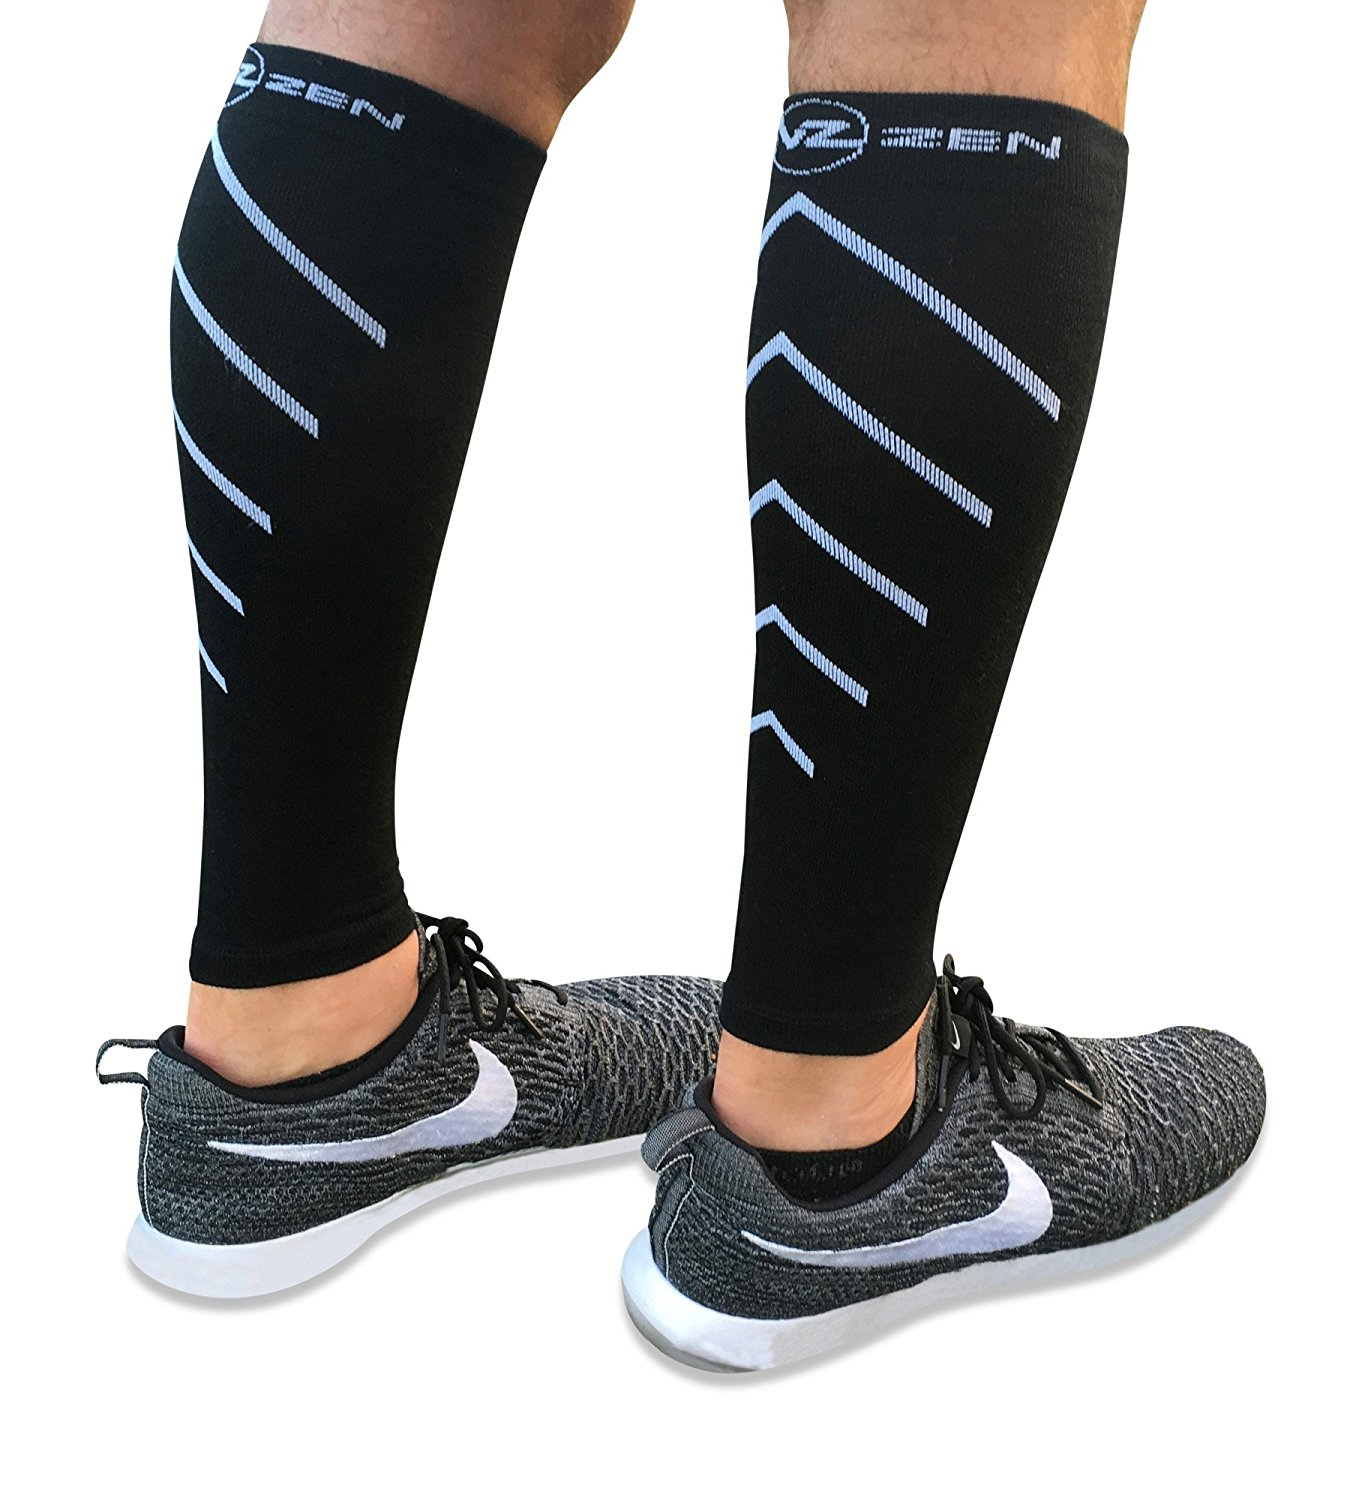 2d6f1ede35 Calf Compression Sleeves - Footless Leg Muscle Support Compression socks  for Men or Women - Improve